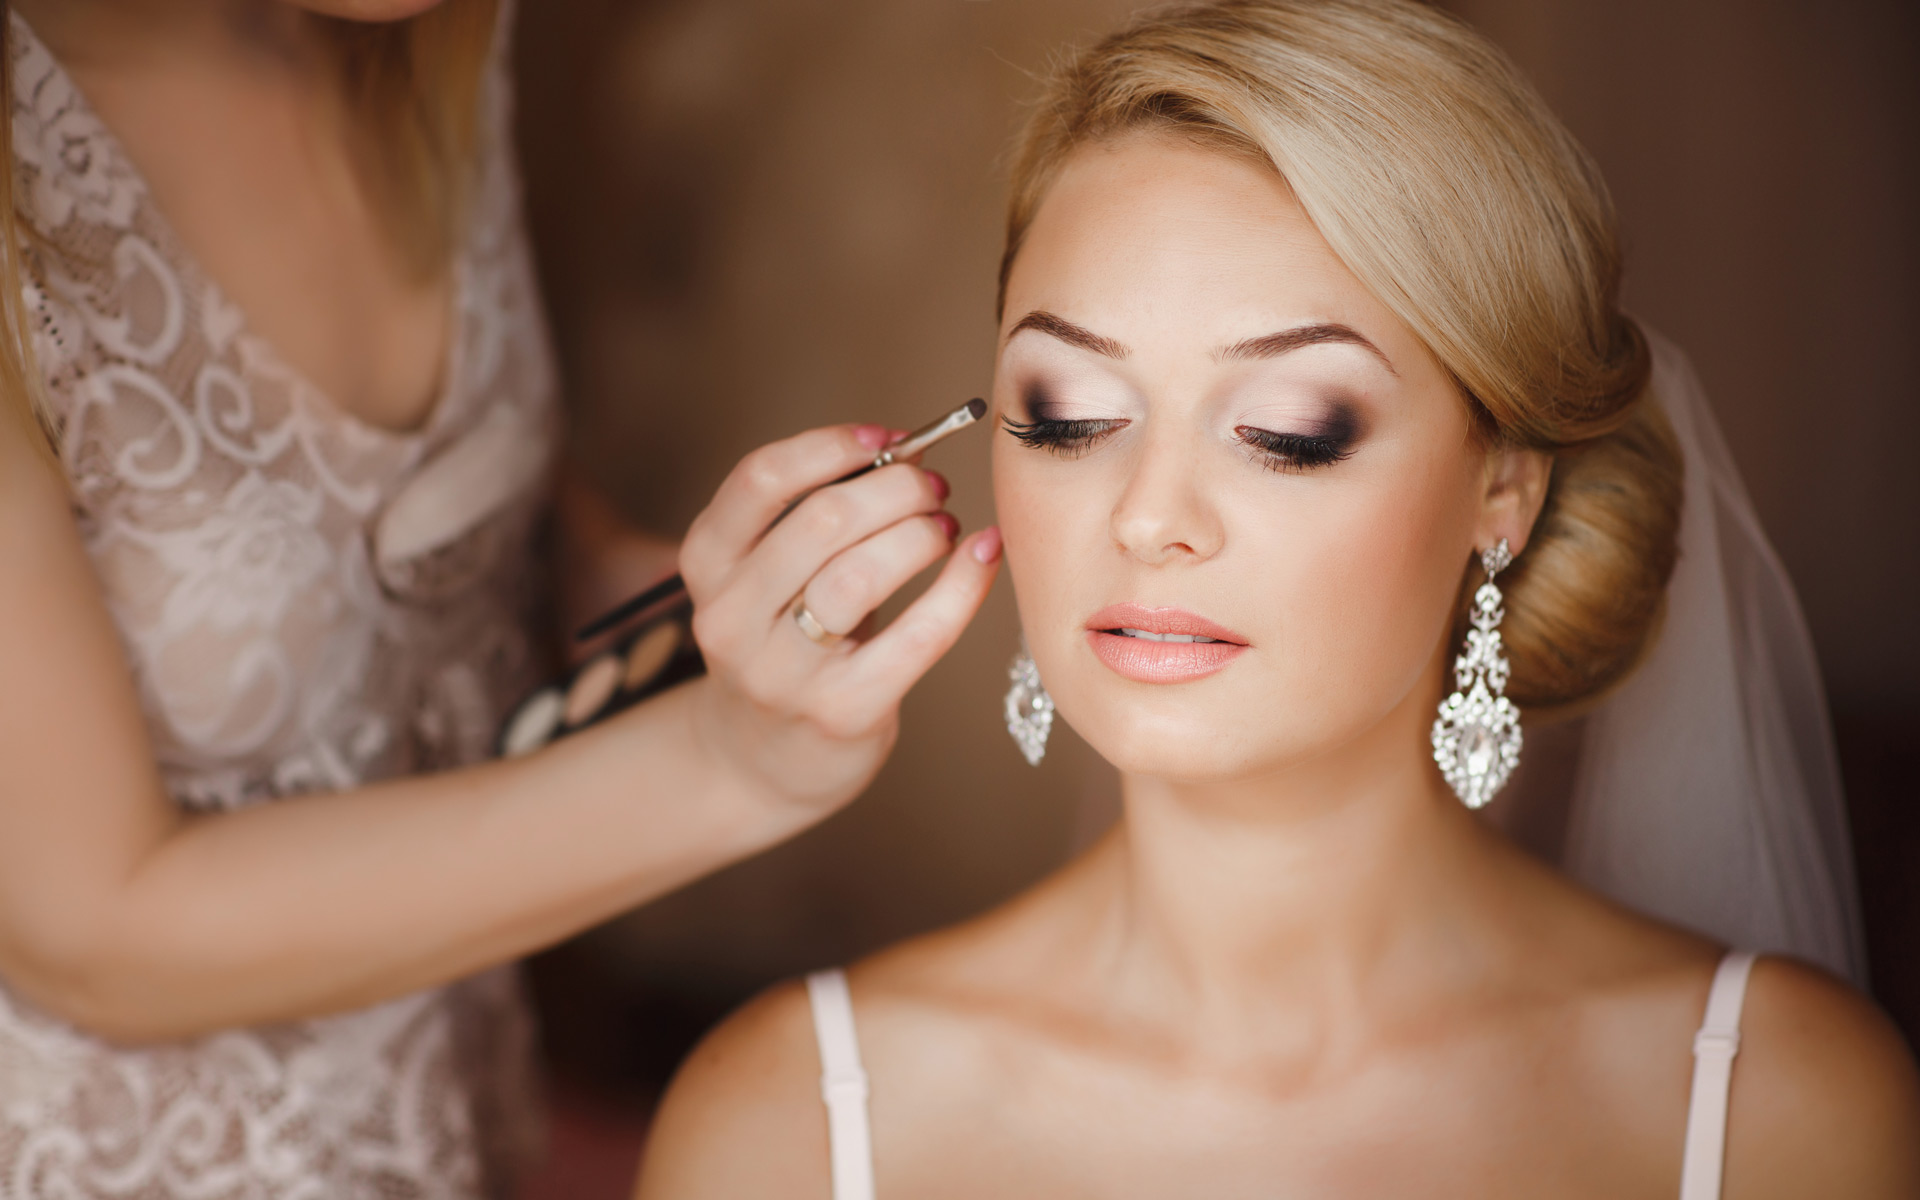 10 top tips: how to get the most out of your wedding hair and